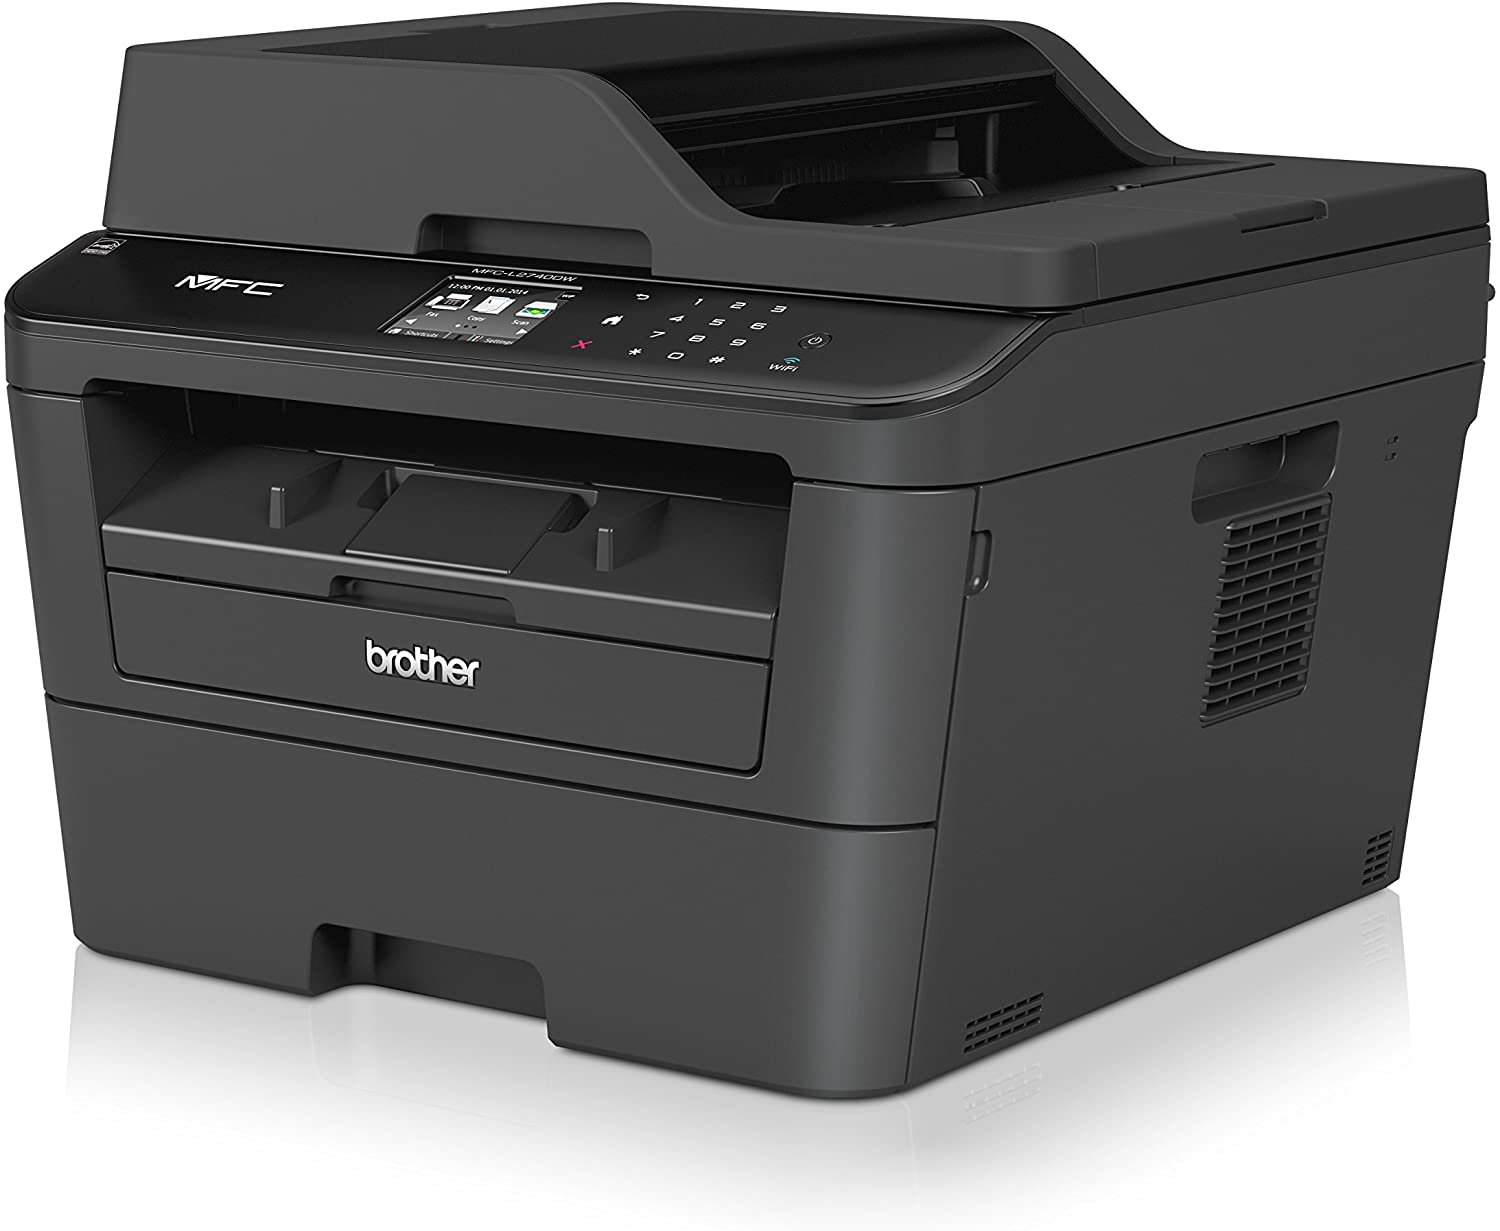 Brother Laser Printer 4-in-1 Multi Function Monochrome Printer Scanner Copier & Fax